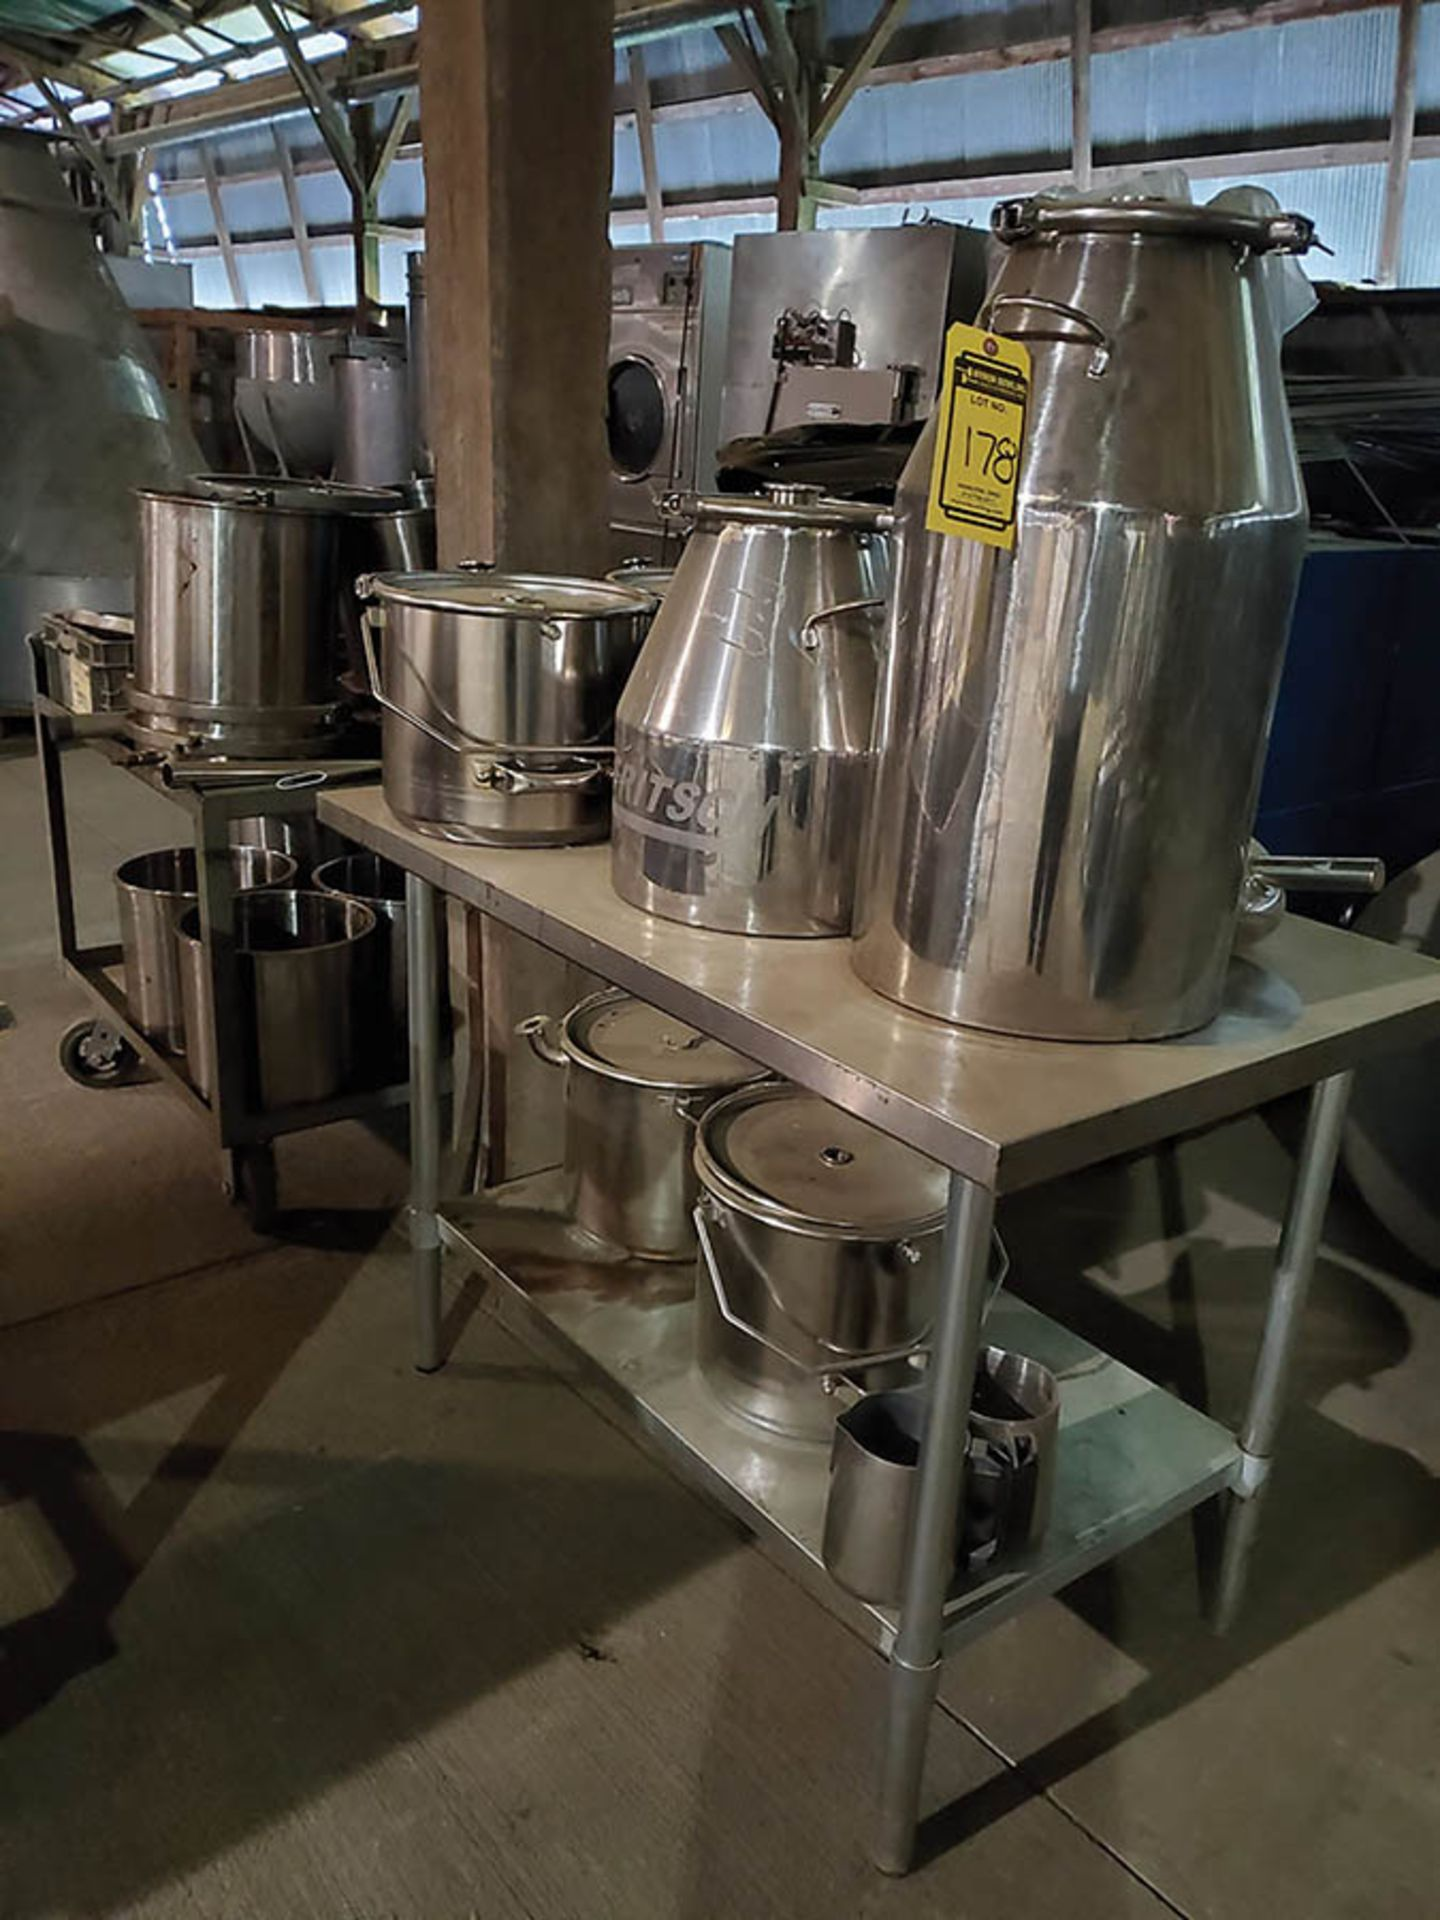 STAINLESS STEEL TABLE AND CART WITH STAINLESS STEEL FRITSCH CONE POTS, PRESSURE POTS, CLAMP RINGS,